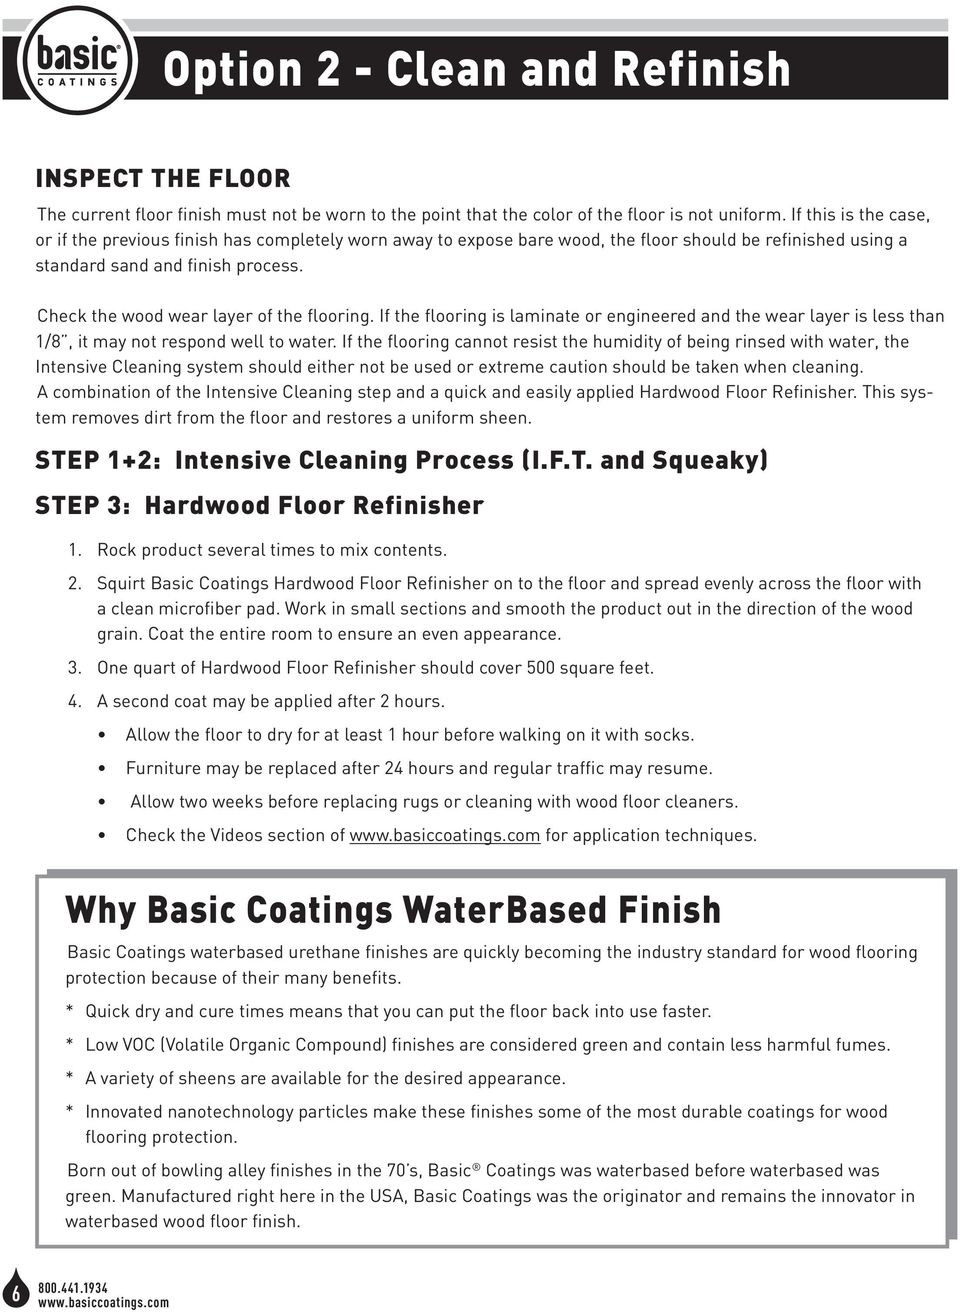 Hardwood Floor Refinishing Colorado Springs Co Of Hardwood Maintenance Workbook and Tips Of the Trade Pdf In Check the Wood Wear Layer Of the Flooring if the Flooring is Laminate or Engineered